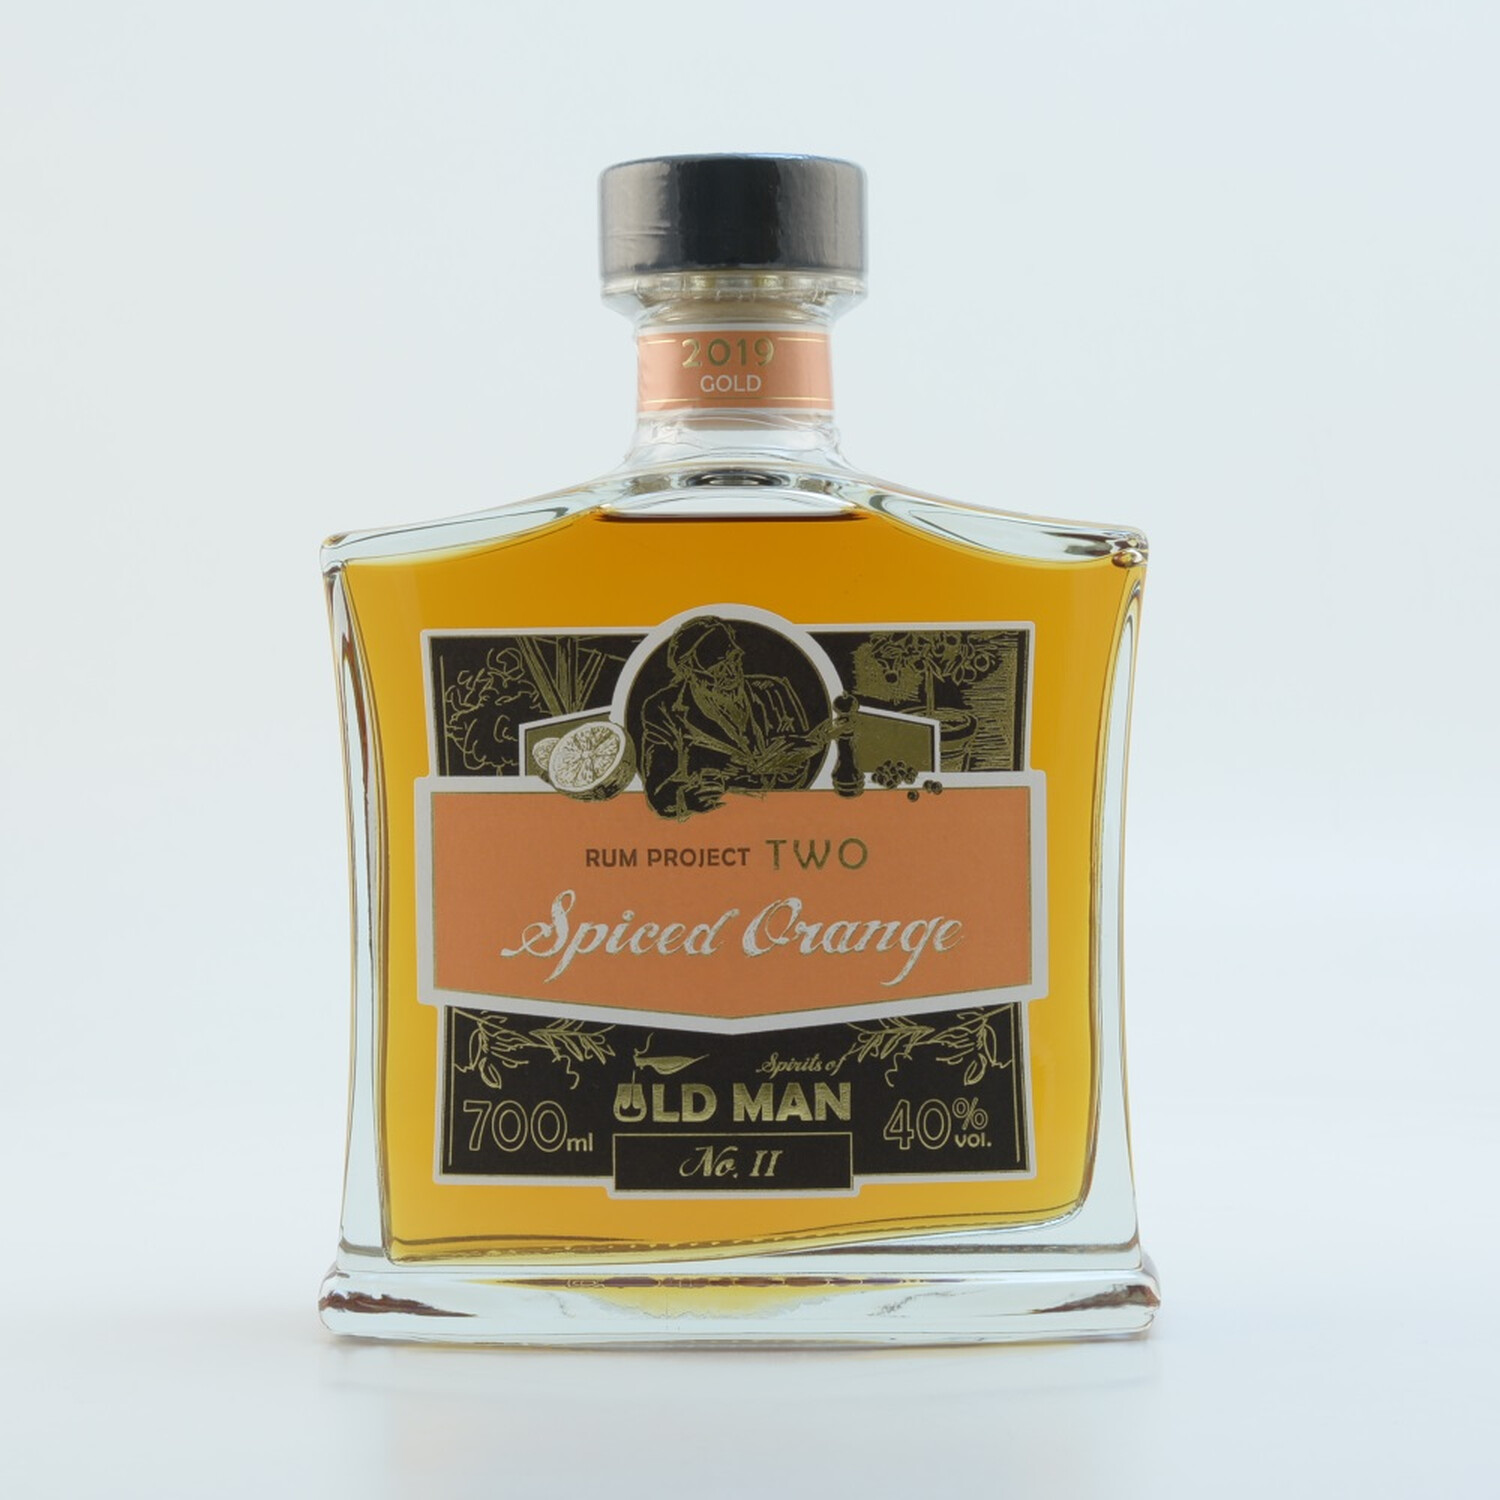 """Rum Project Two"" (Spiced Orange) by Spirits of Old Man 40% 0,7l"